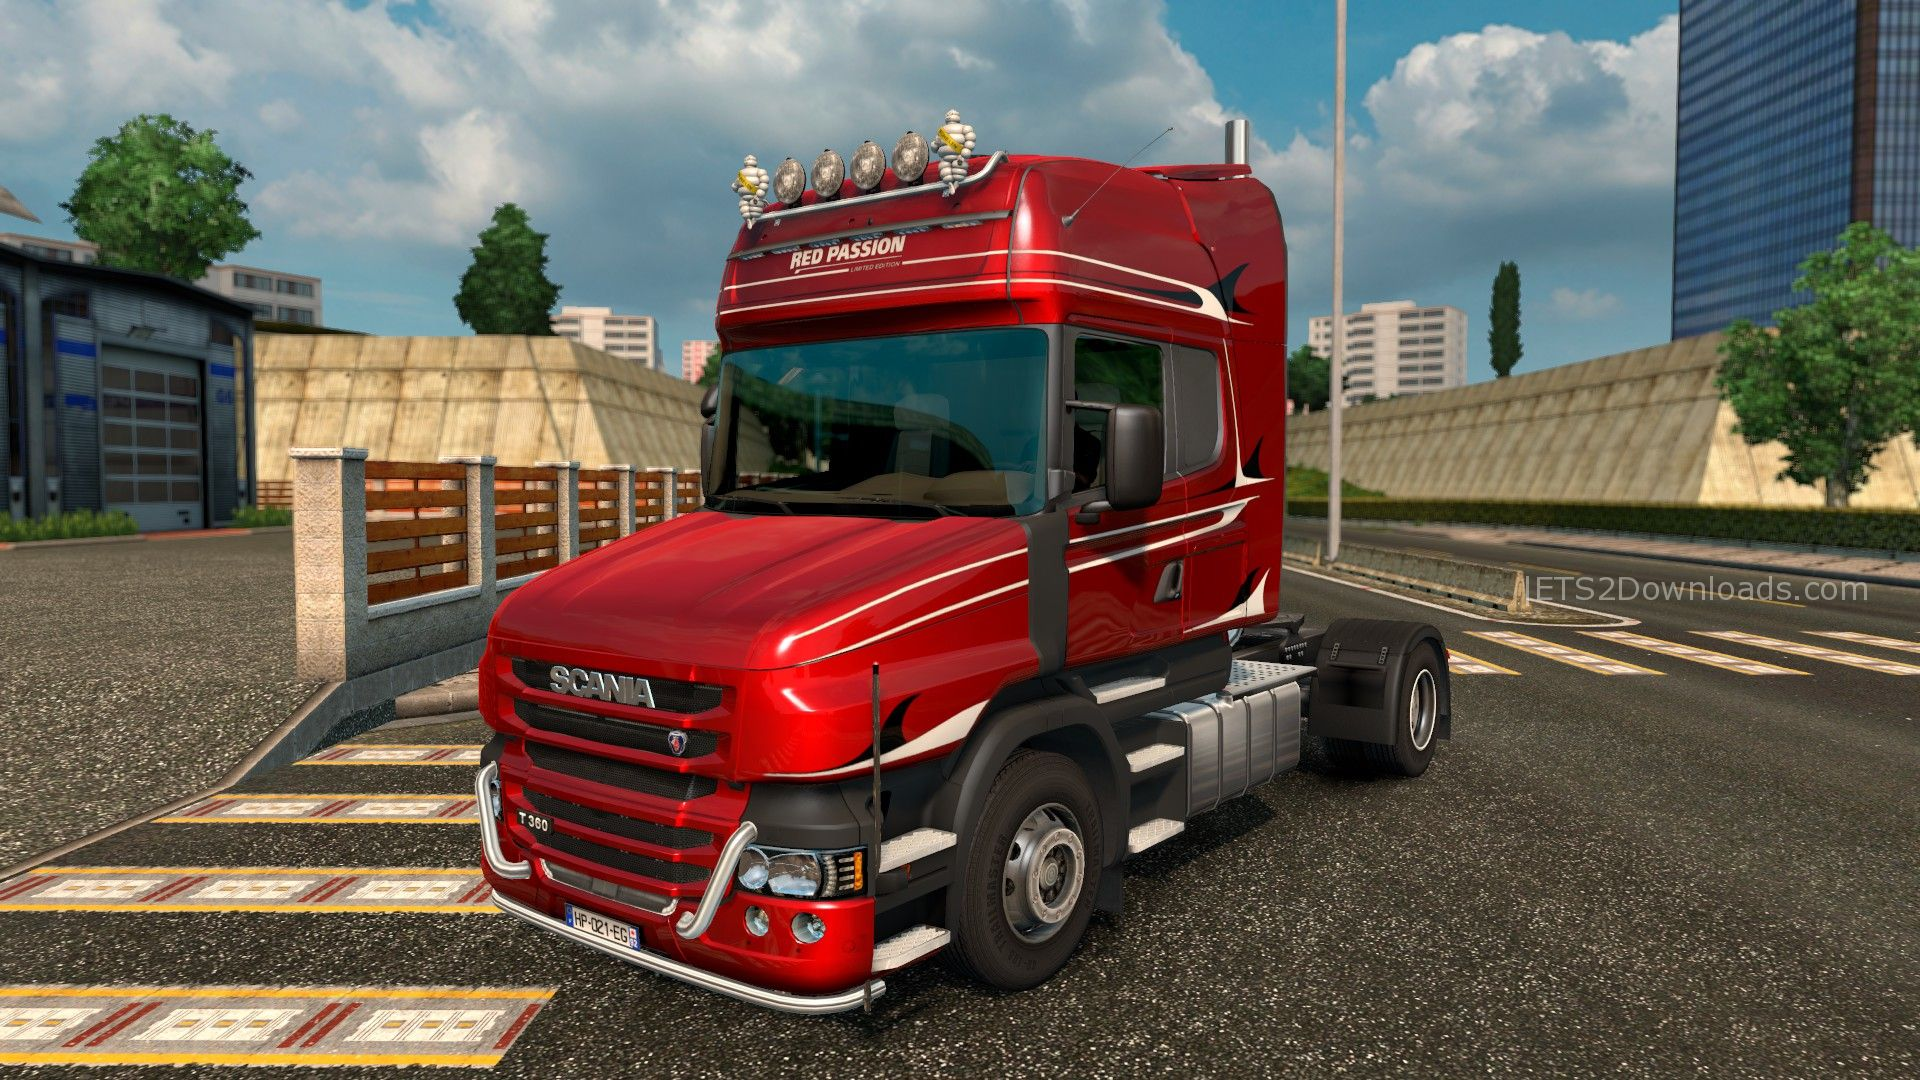 red-passion-limited-edition-skin-for-scania-t